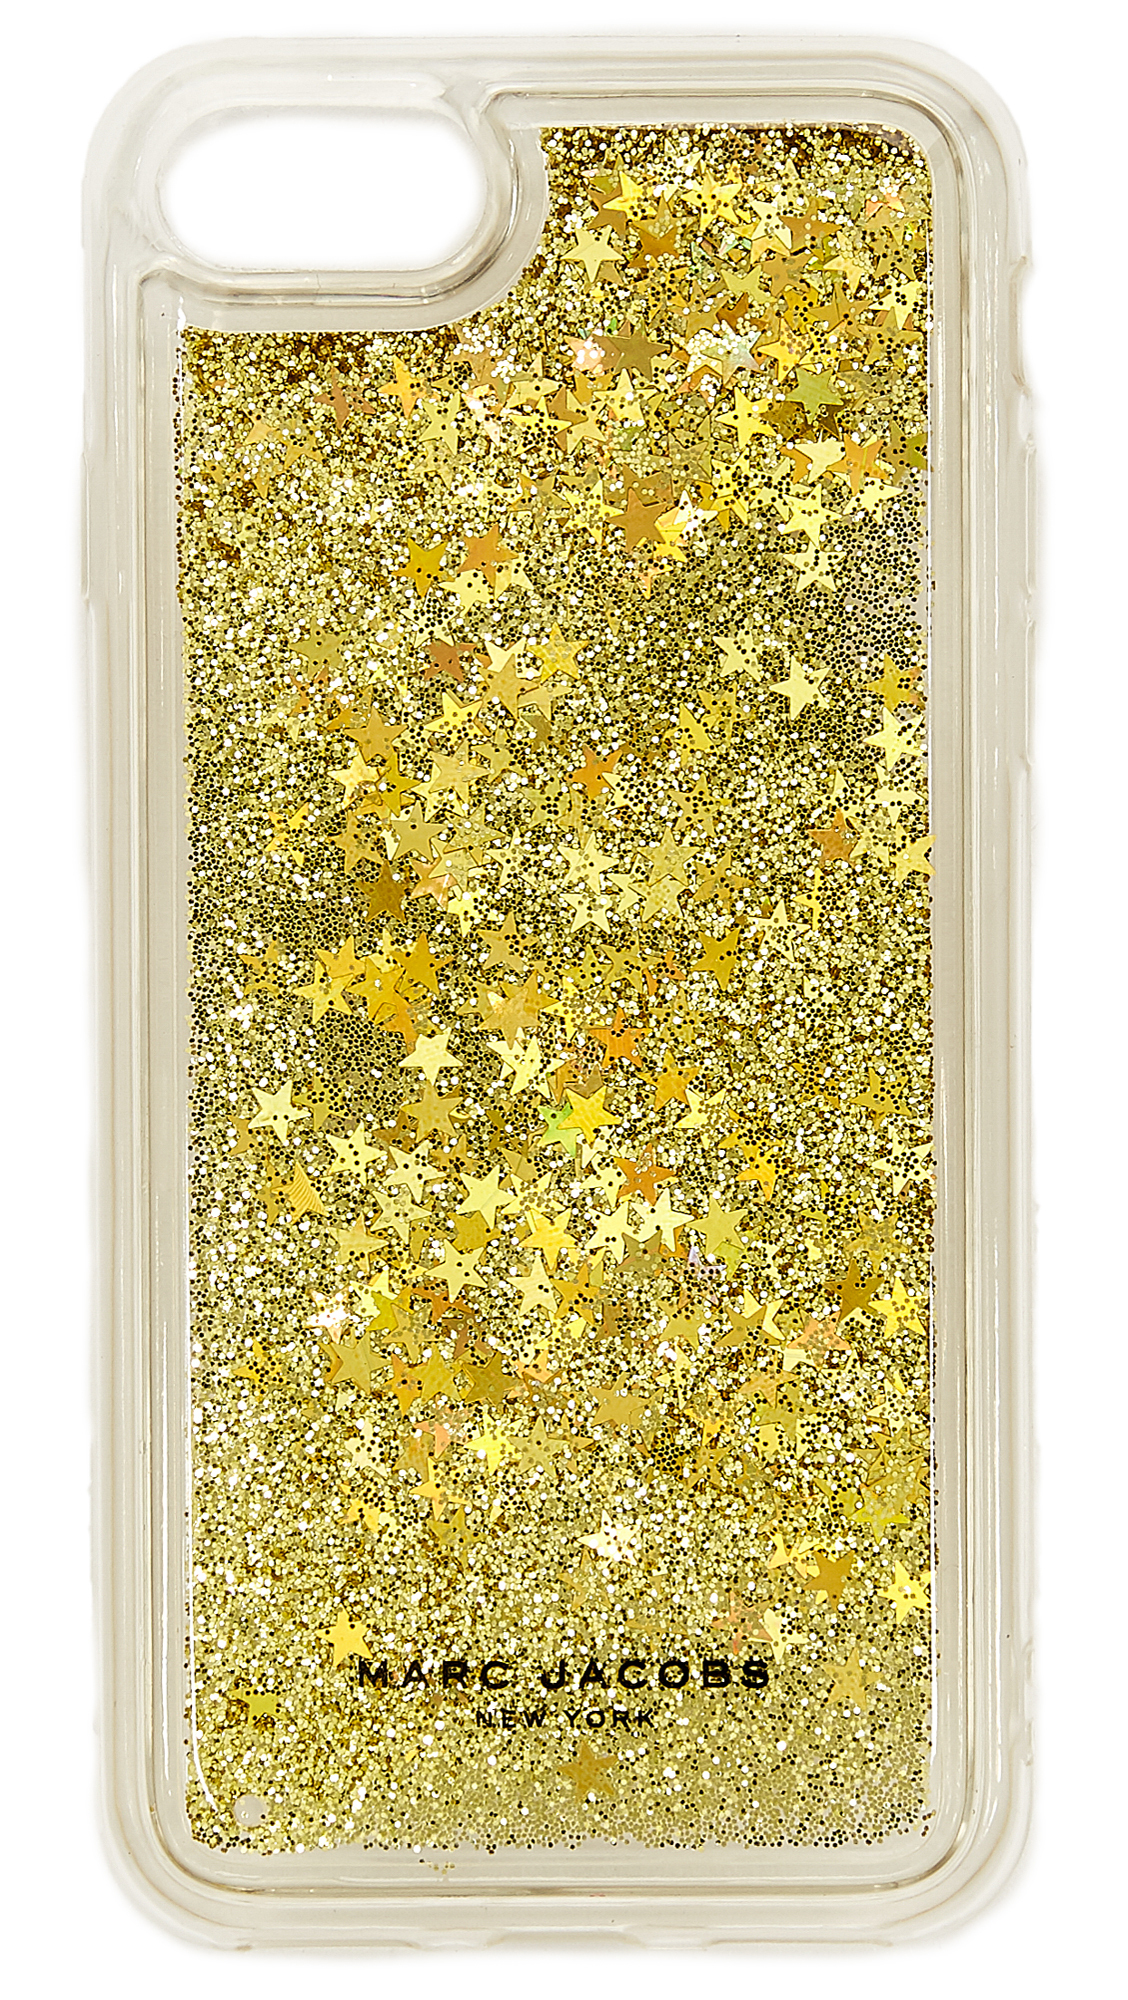 Marc Jacobs Floating Glitter iPhone 7 / 8 Case_Gold